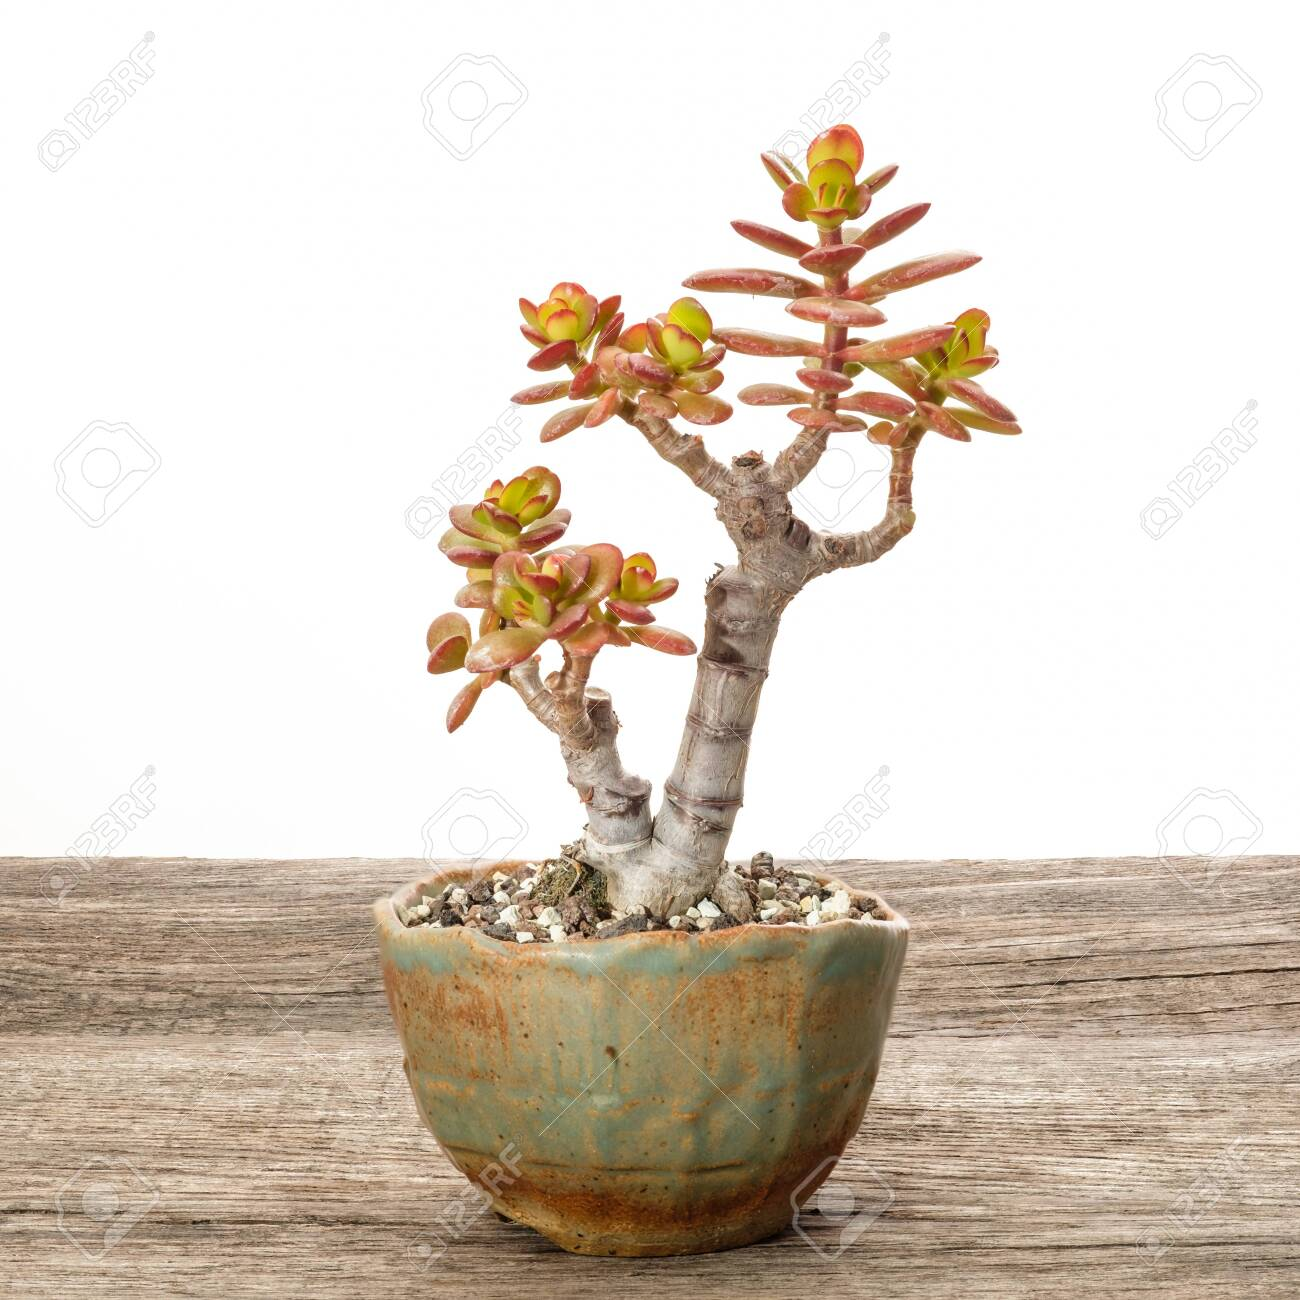 Money Bonsai Tree Crassula Ovata In A Pot On Wood Stock Photo Picture And Royalty Free Image Image 152018903